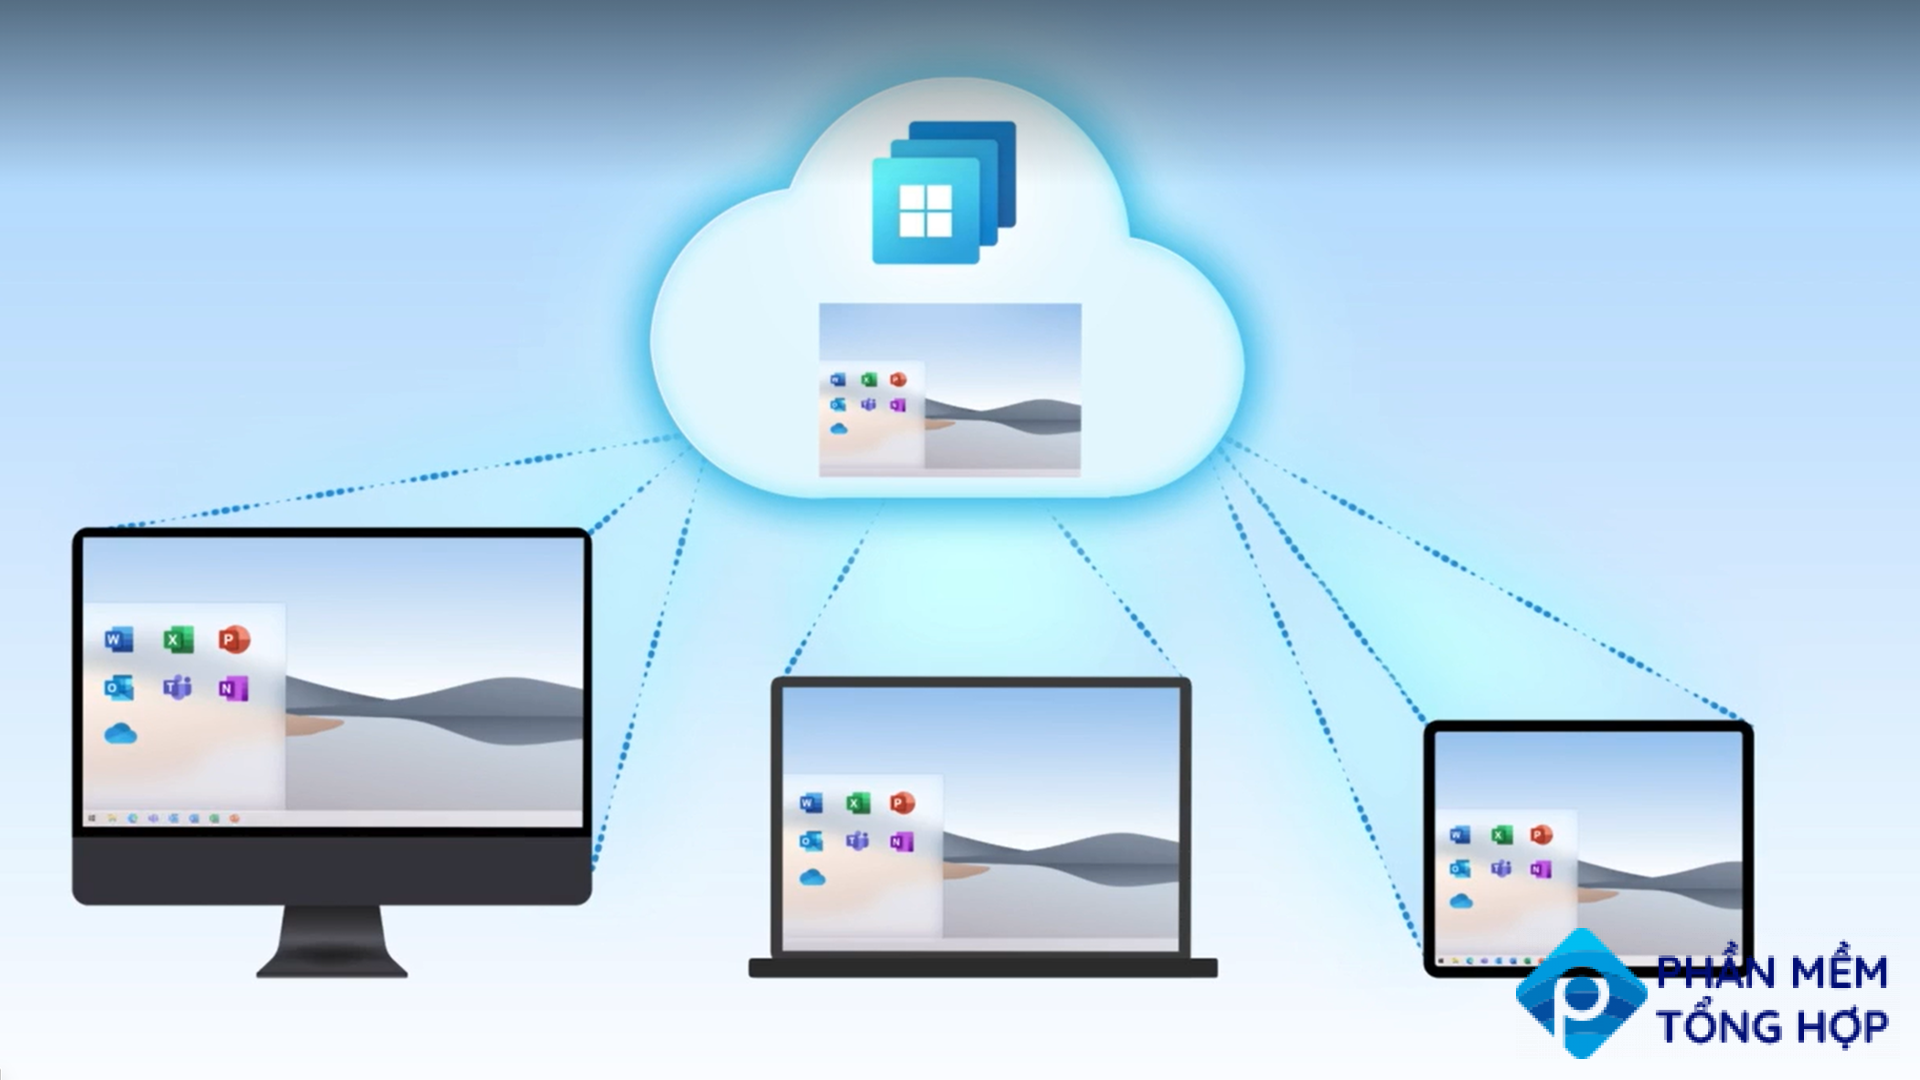 Windows in the Cloud beaming down to various devices